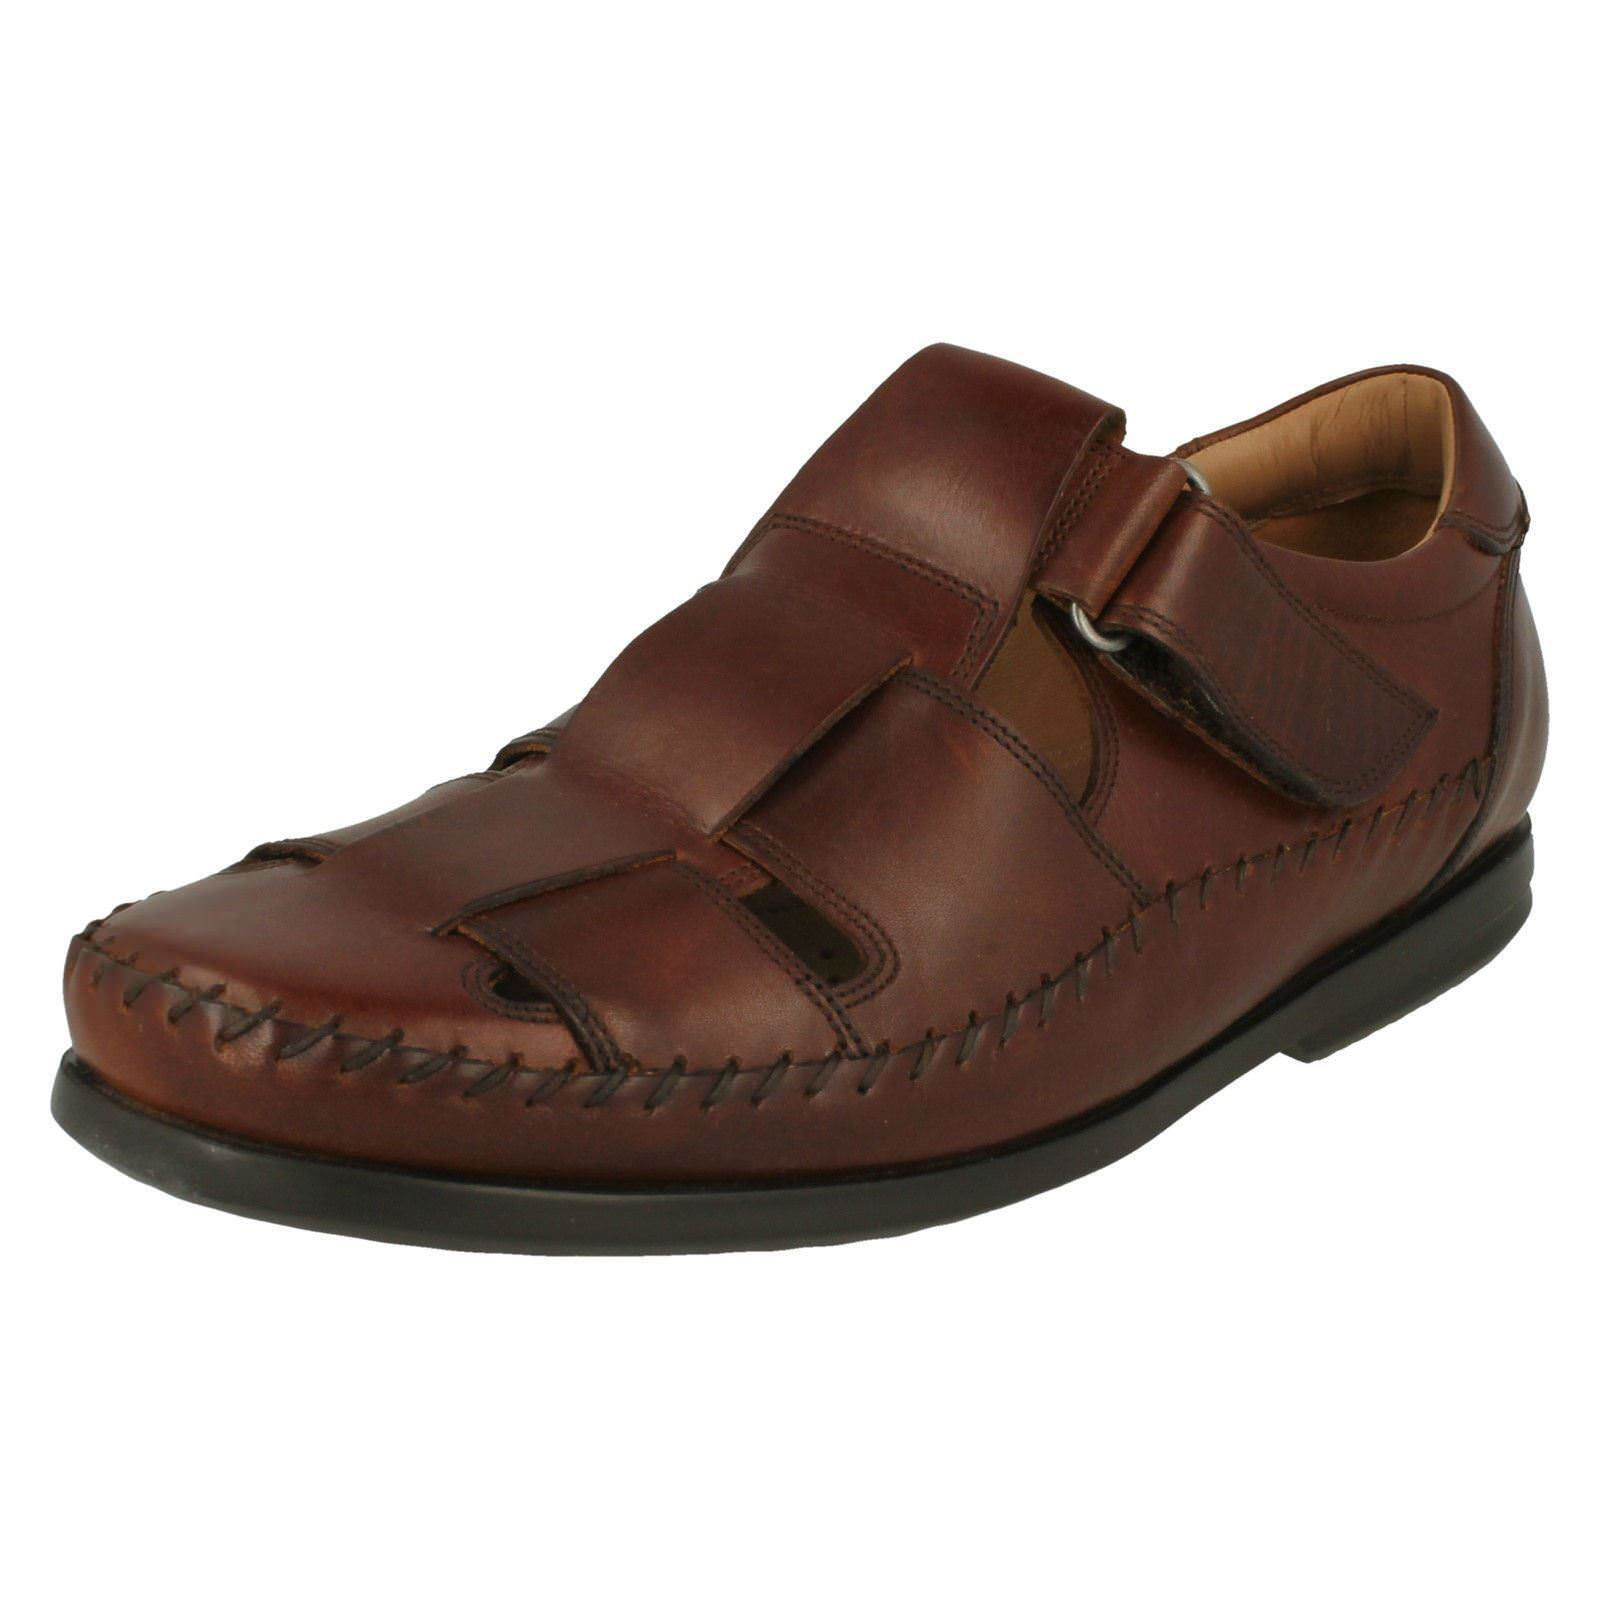 MENS CLARKS UNSTRUCTURED LEATHER CASUAL SUMMER SANDALS SHOES SIZE UN GALA STRAP